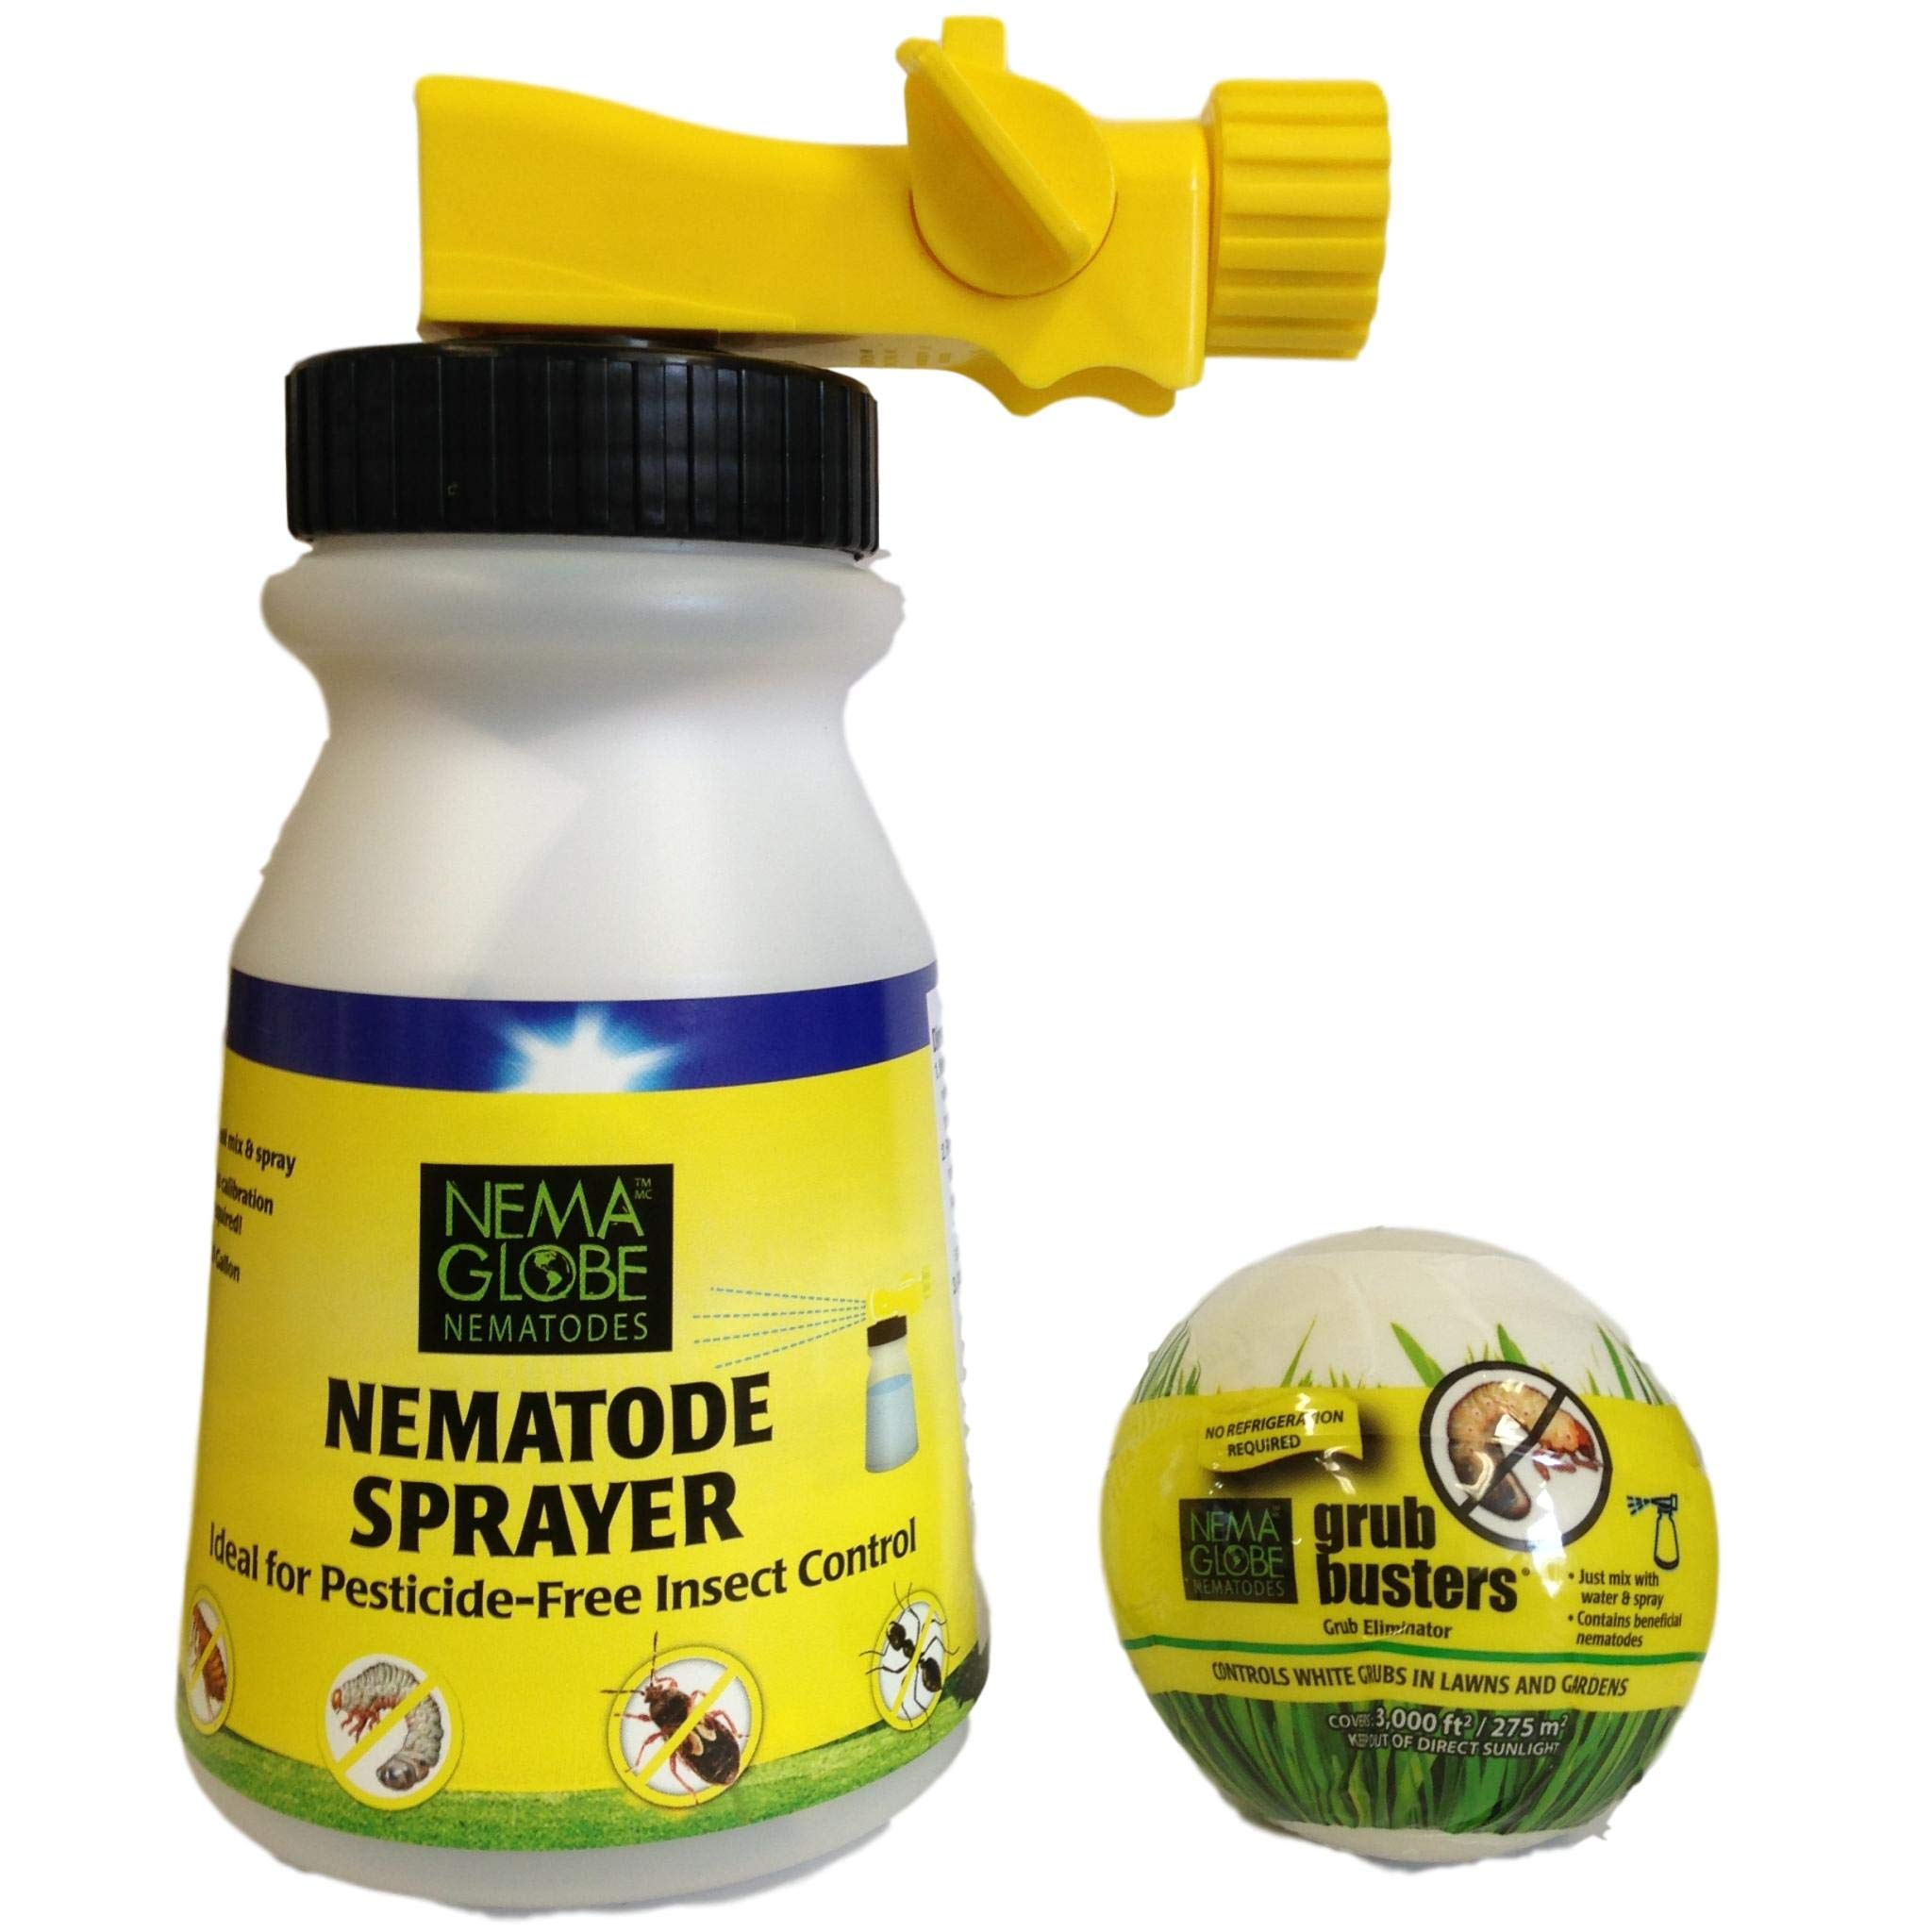 40 Million Beneficial Nematodes(H.bacteriophora) - Nema Globe Grub Buster - Sprayer Combo - New ''No Refrigeration Required'' Formula by Nemaglobe